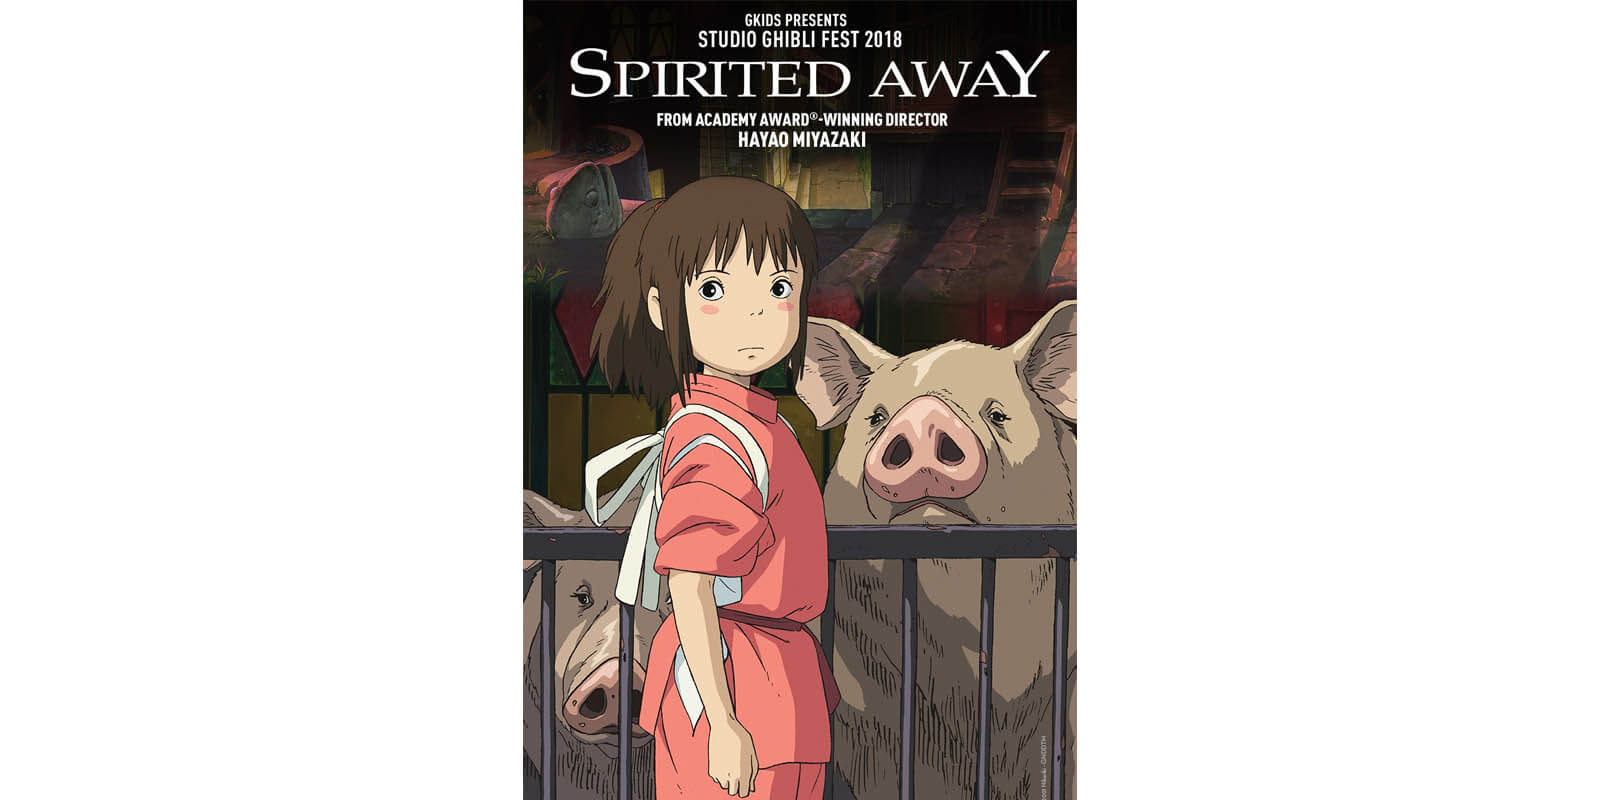 Spirited Away (Studio Ghibli Fest 2018)